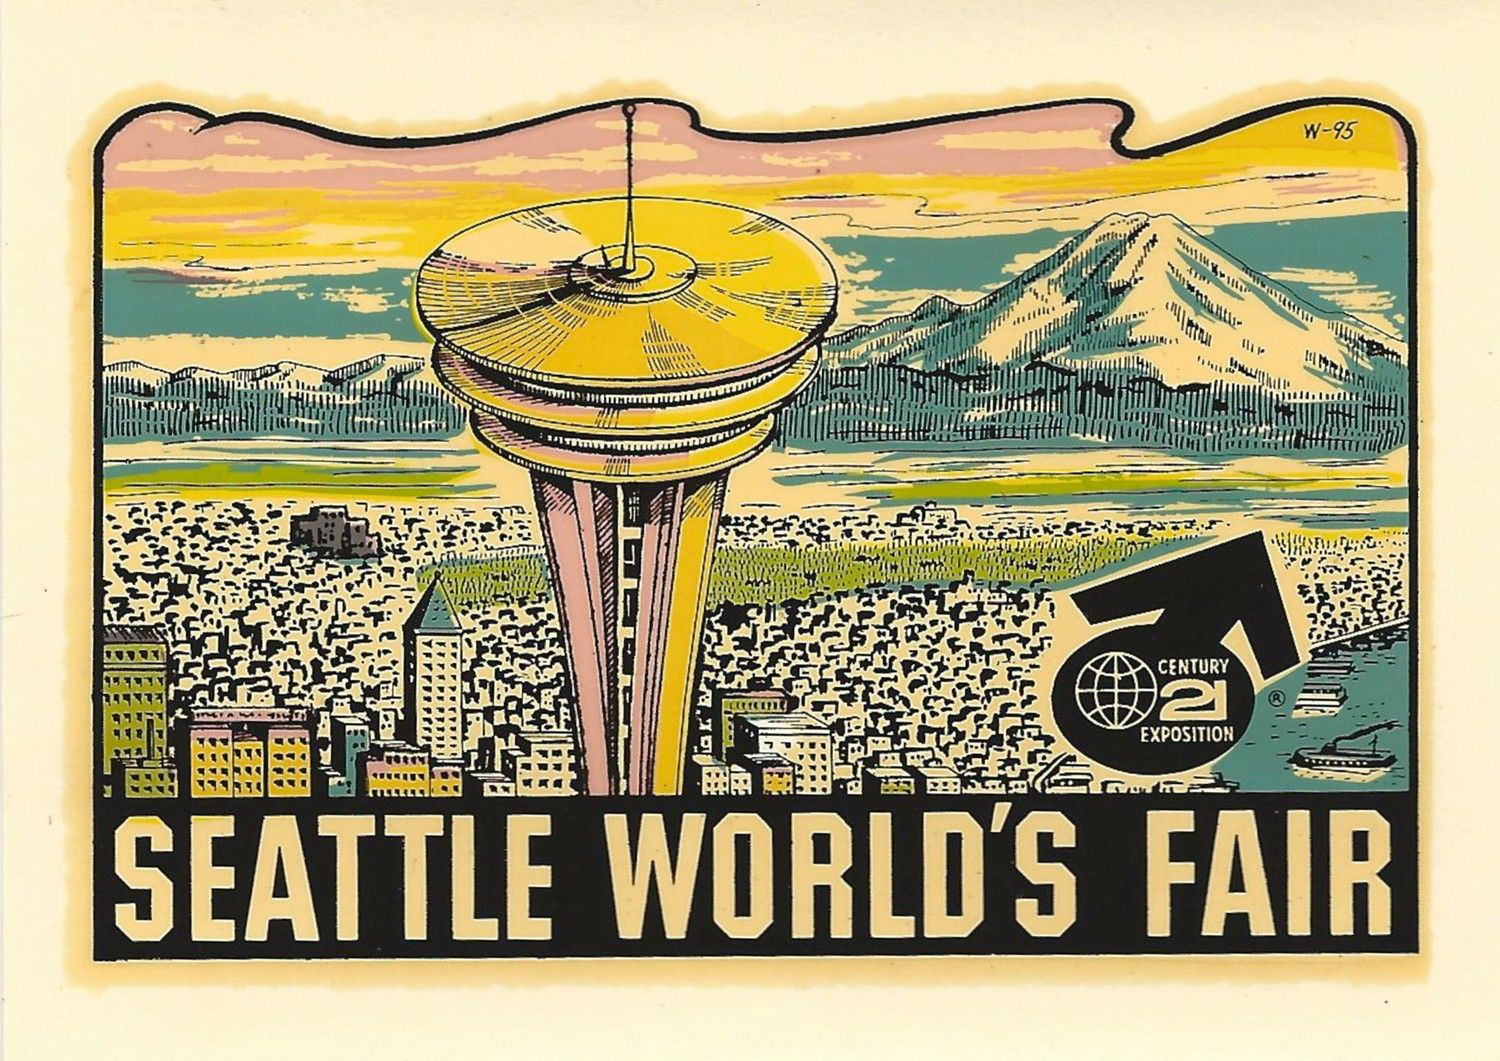 184 Days of the 1962 Seattle World's Fair - Day 103: Decal